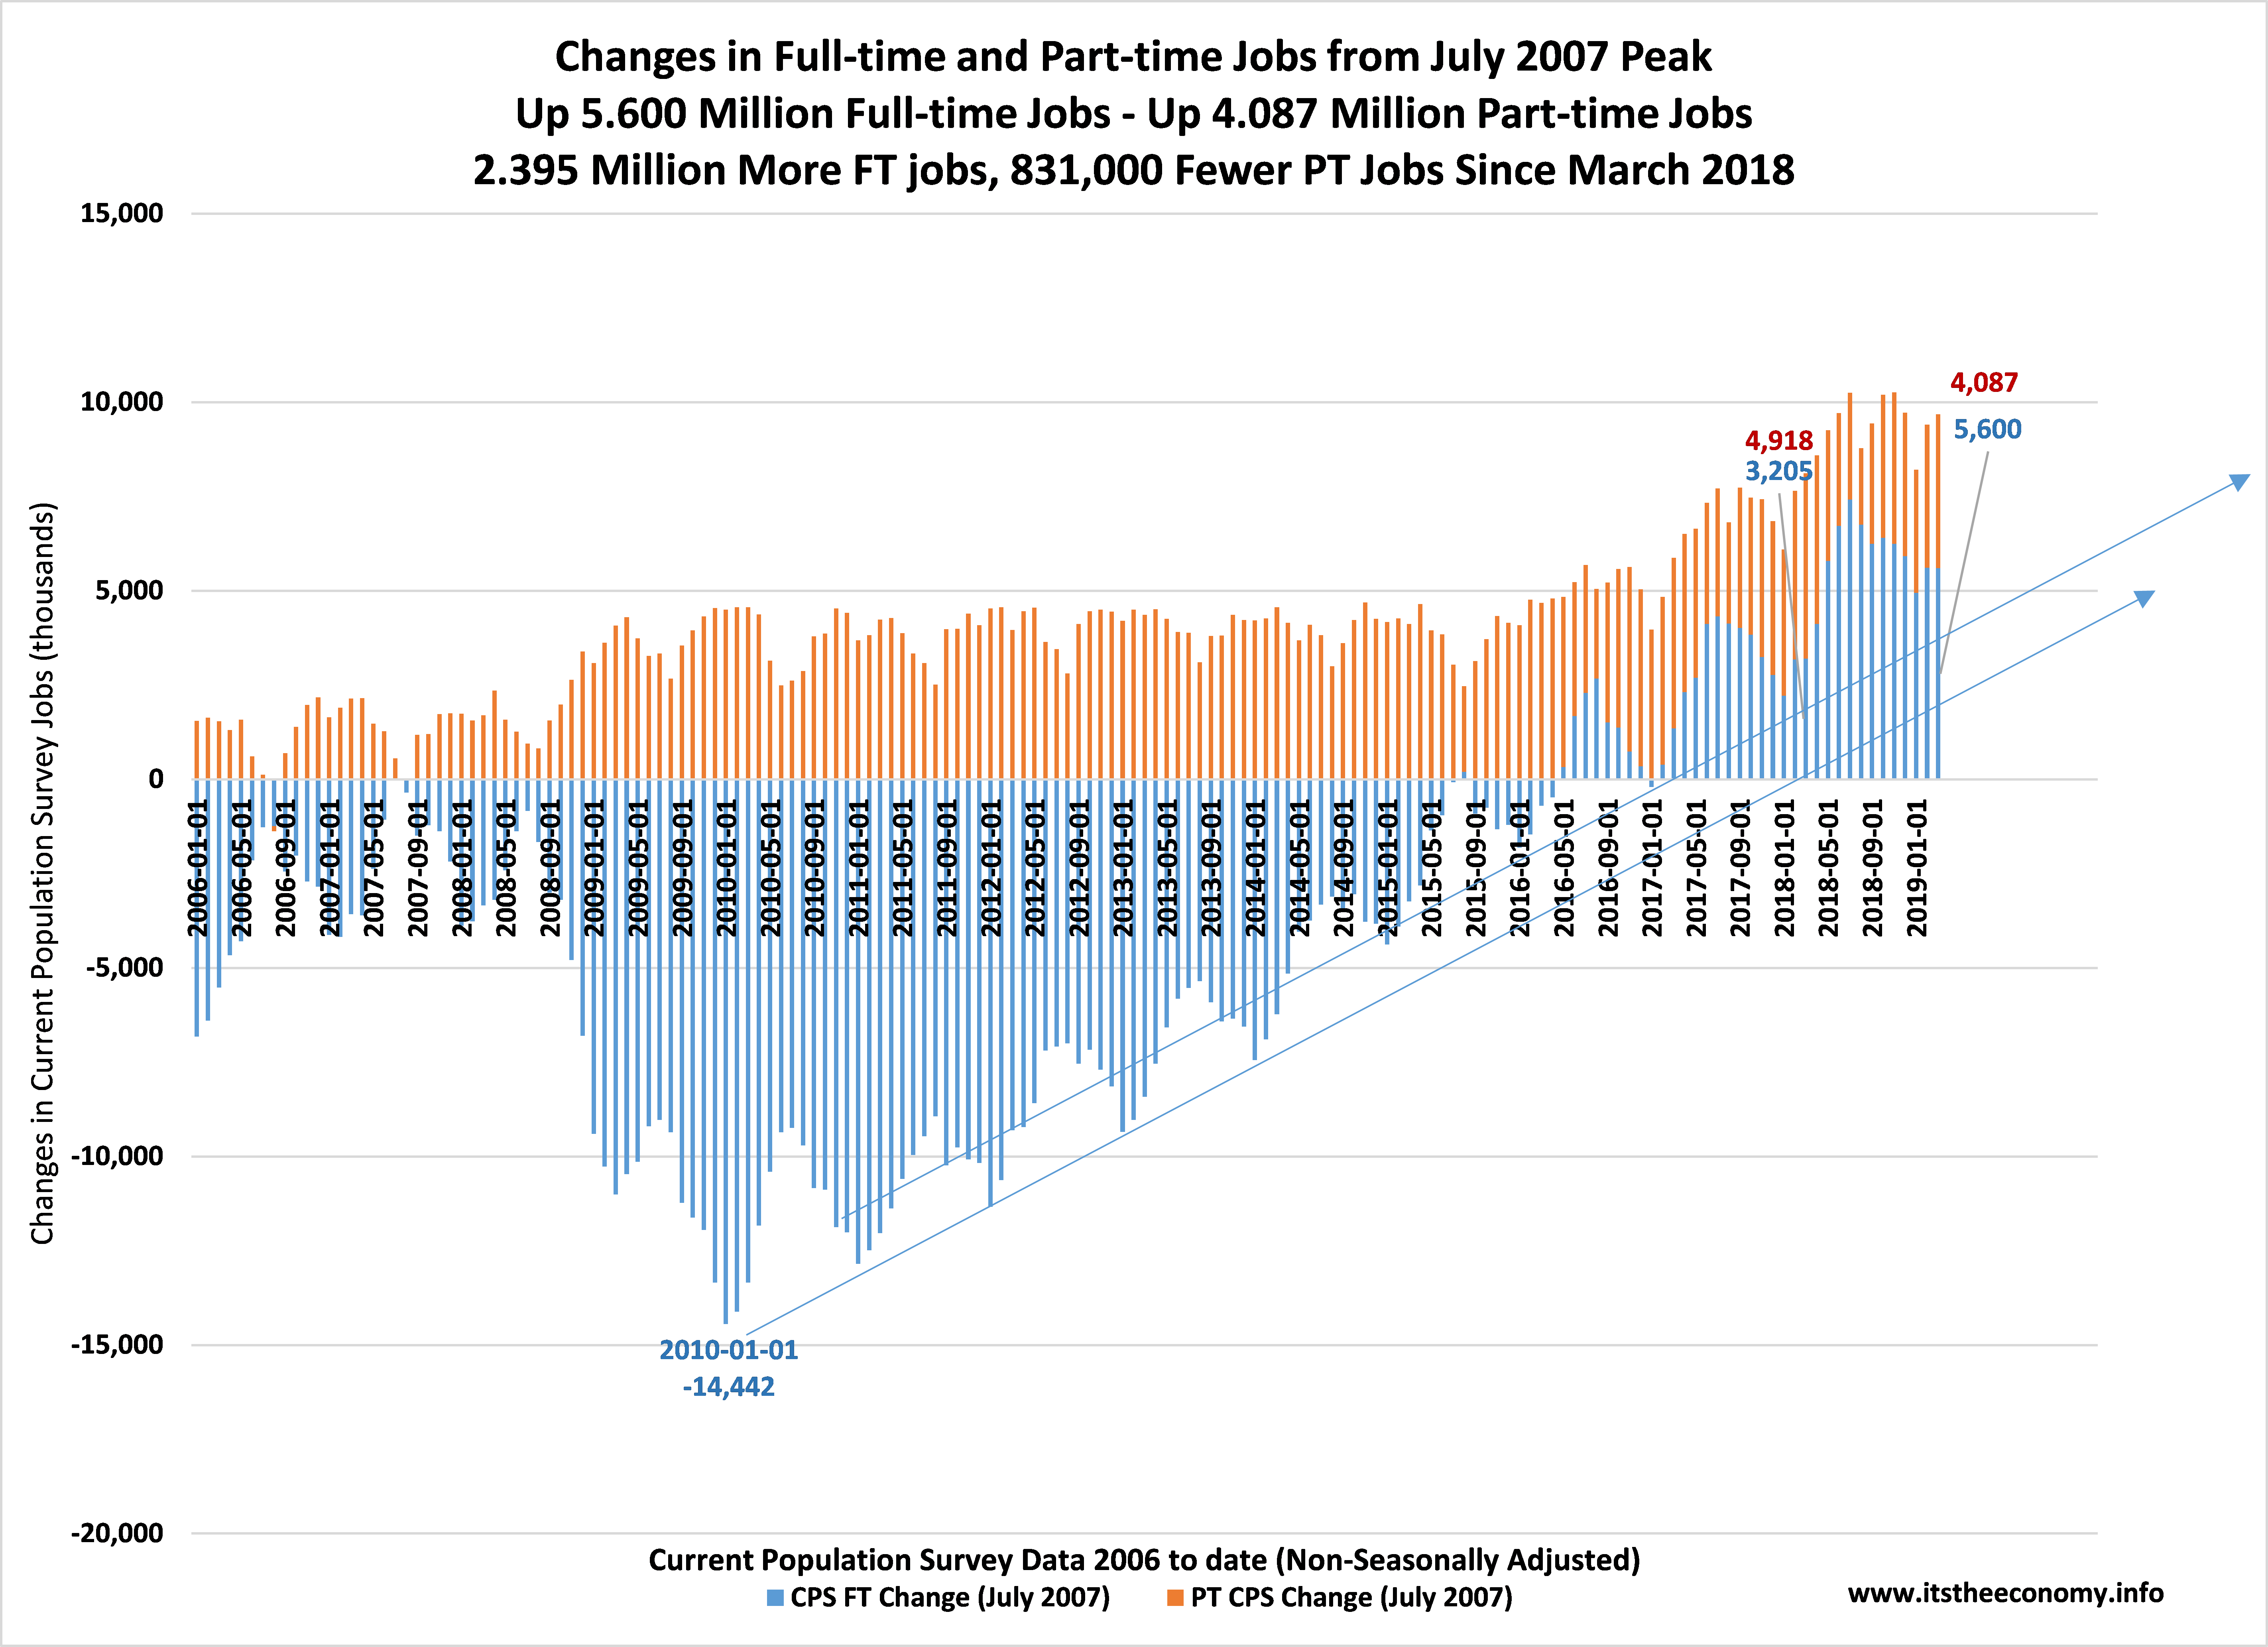 Full-time jobs are replacing part-time jobs as we continue to climb the jobs mountain. There are 5.6 million more full-time jobs and 4.087 millionmore part-time jobs than we had during July 2007. Remember that we had fewer full-time jobs during January 2017 than we had during July 2007.